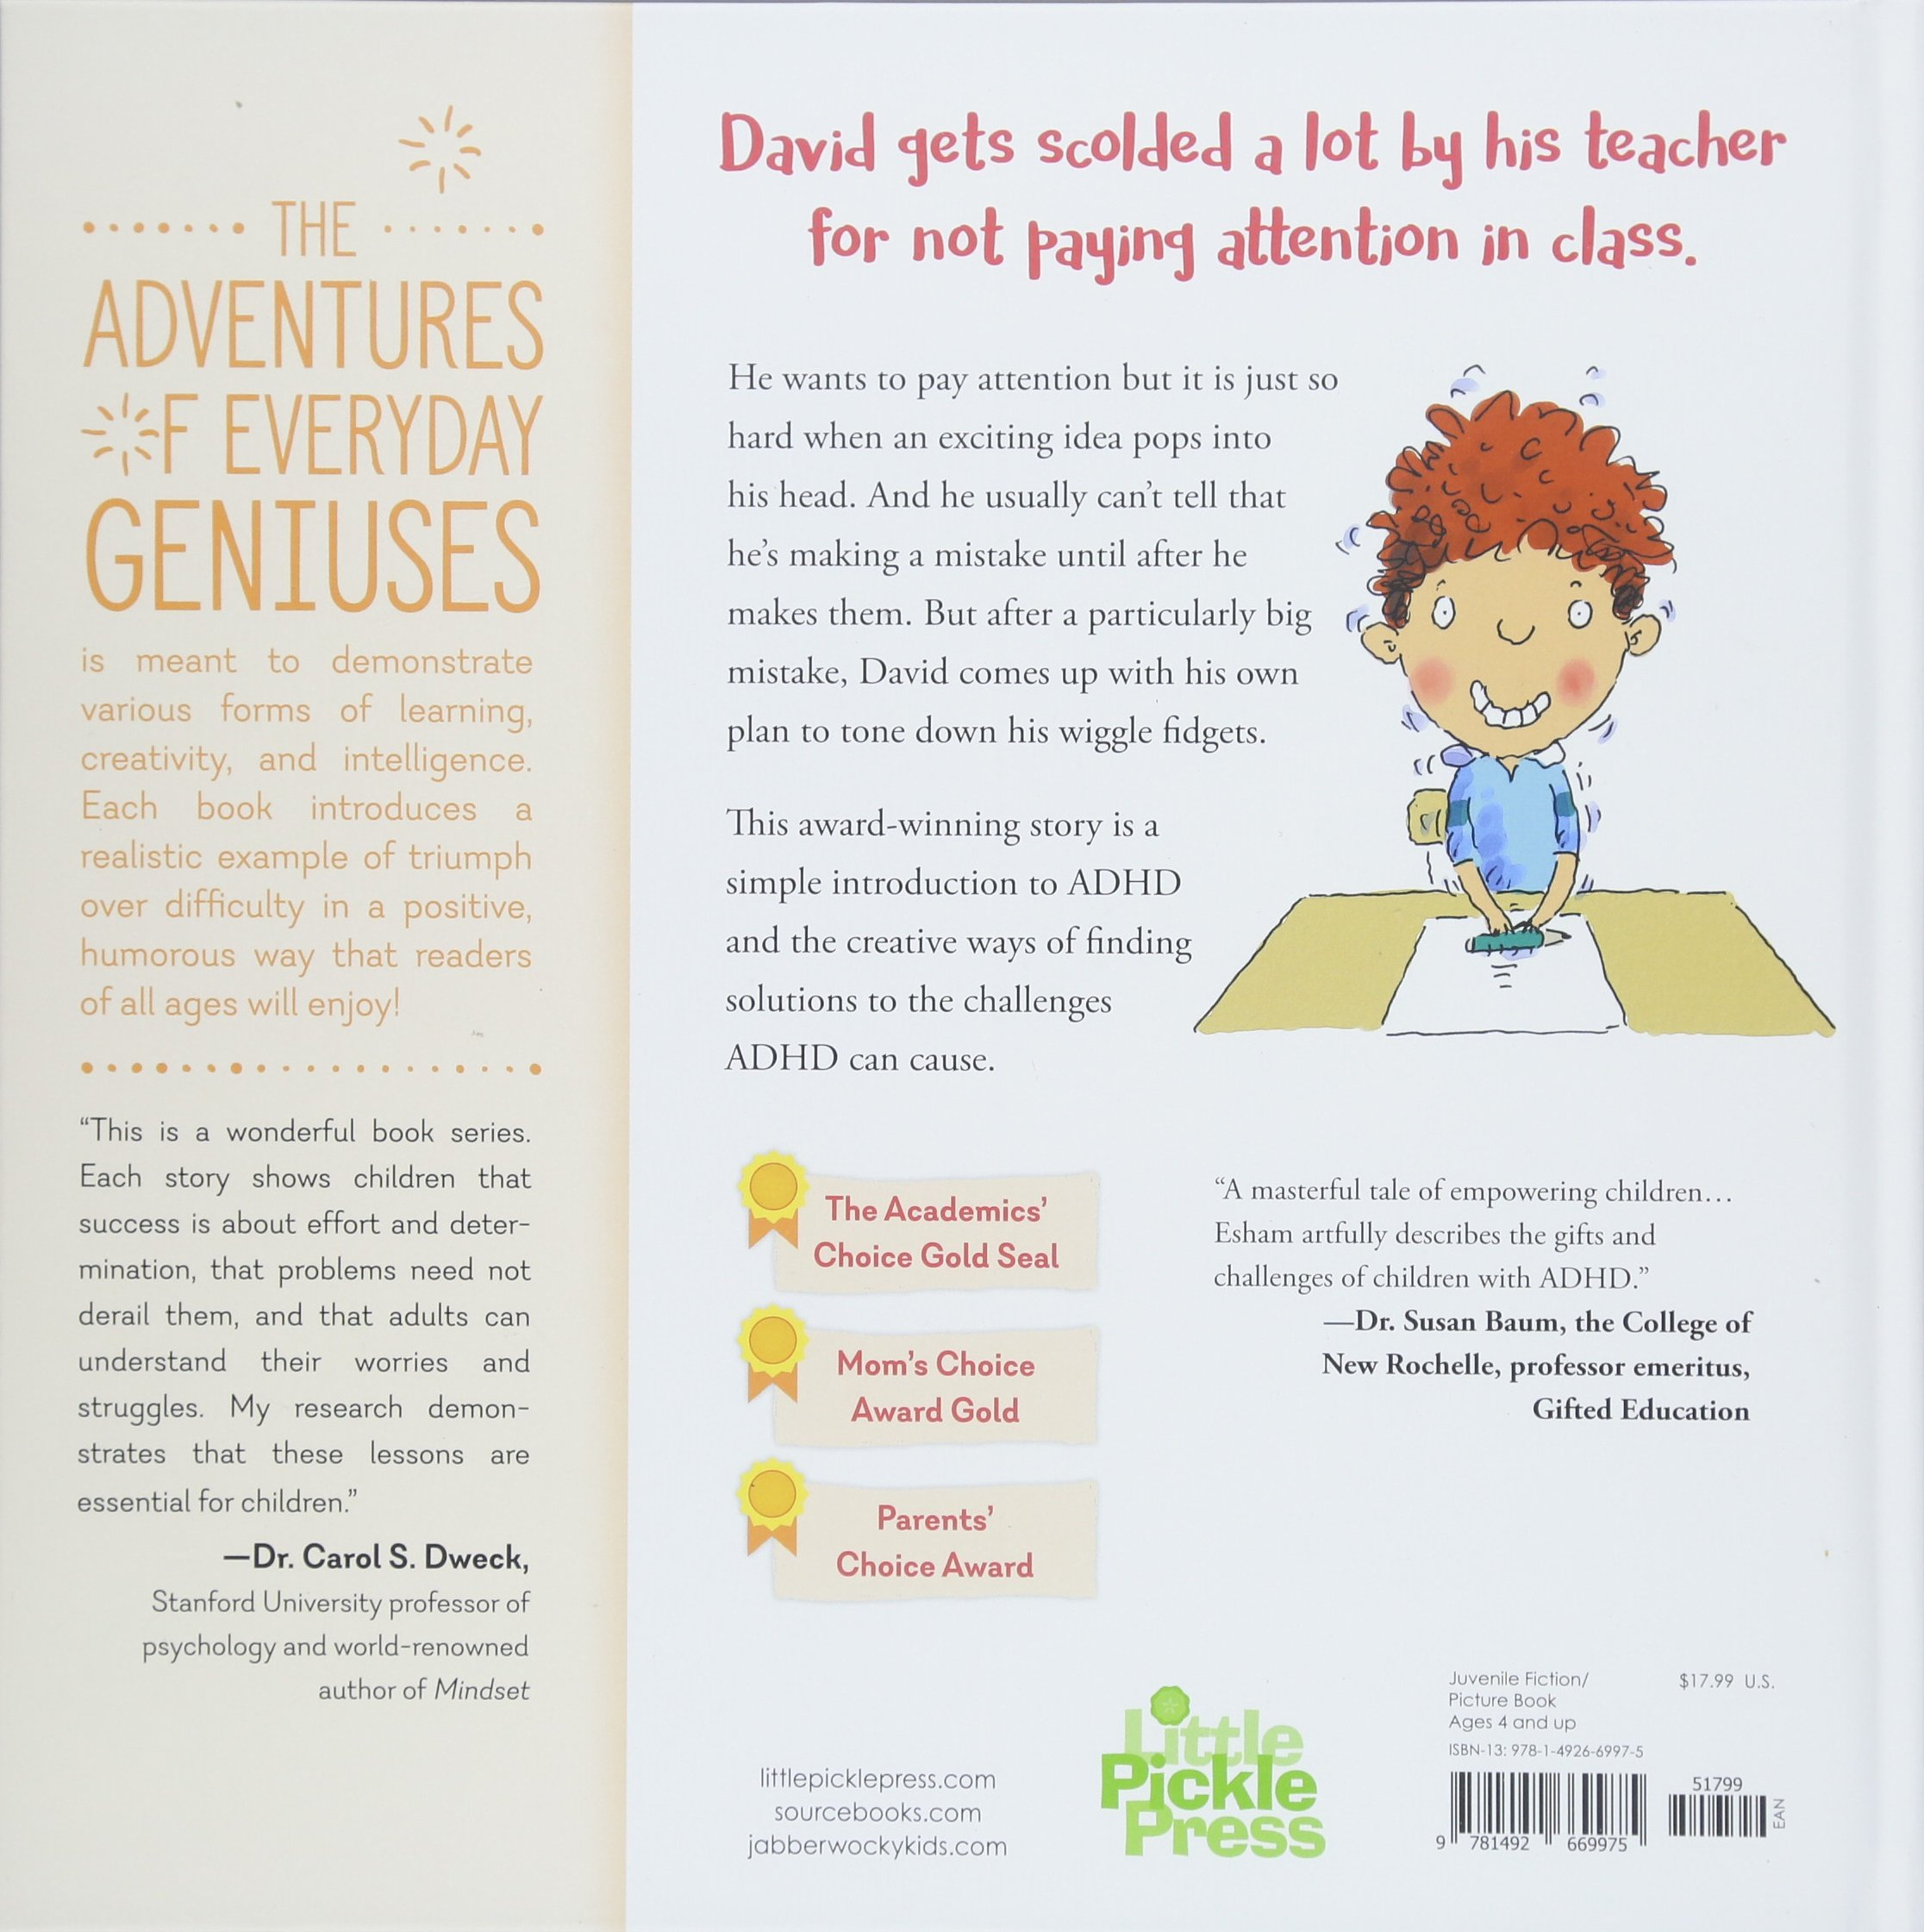 Mrs. Gorski I Think I Have the Wiggle Fidgets (The Adventures of Everyday Geniuses) by Little Pickle Press (Image #3)